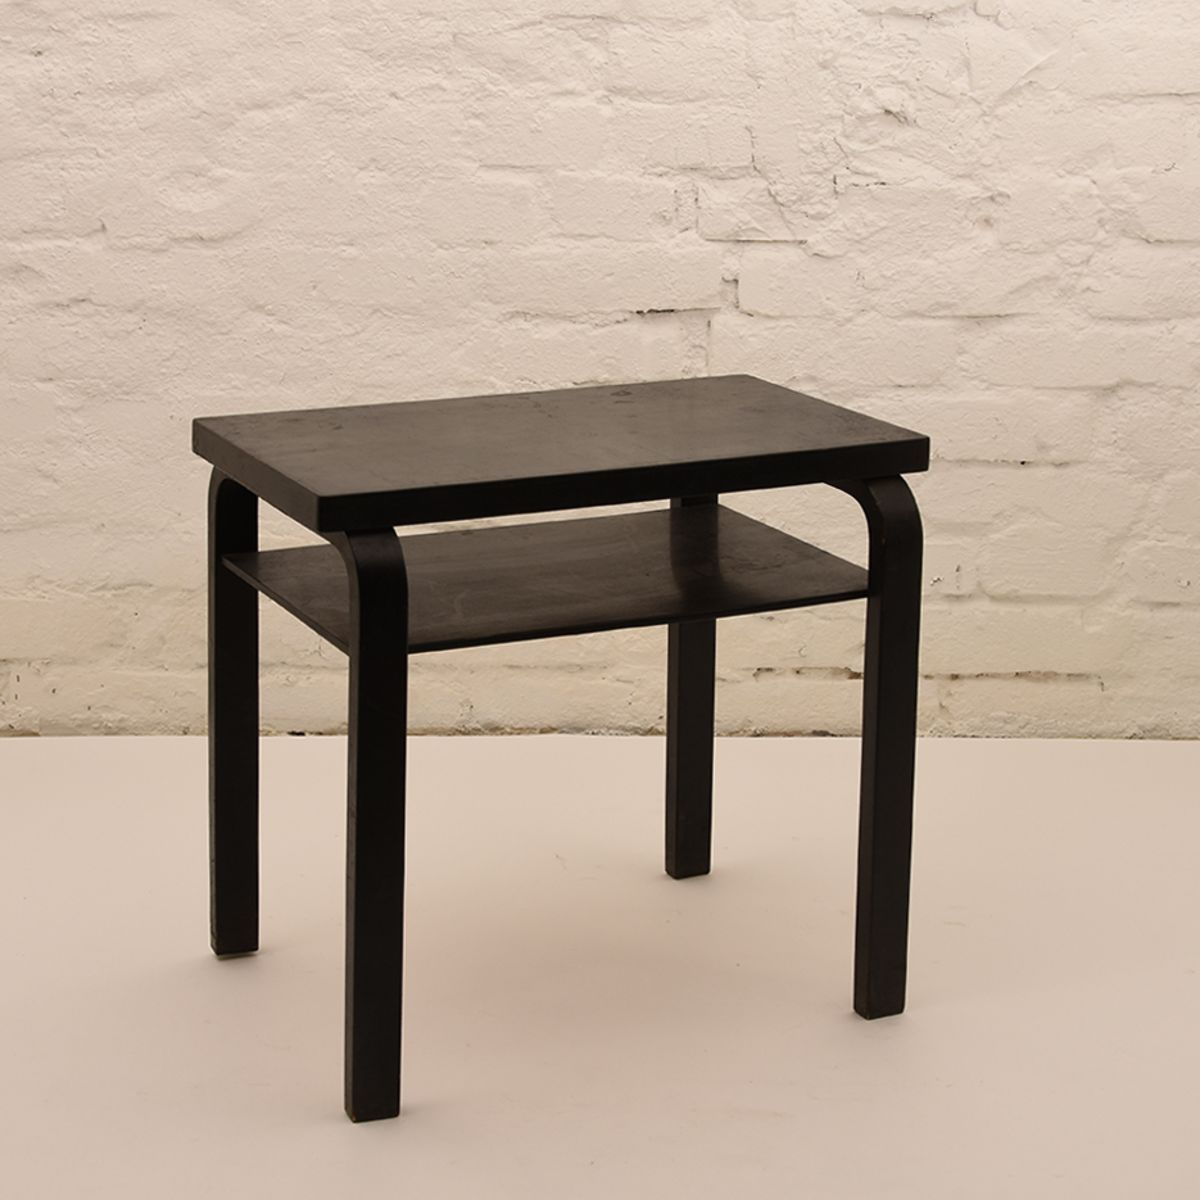 Alvar-Aalto_Side-Table